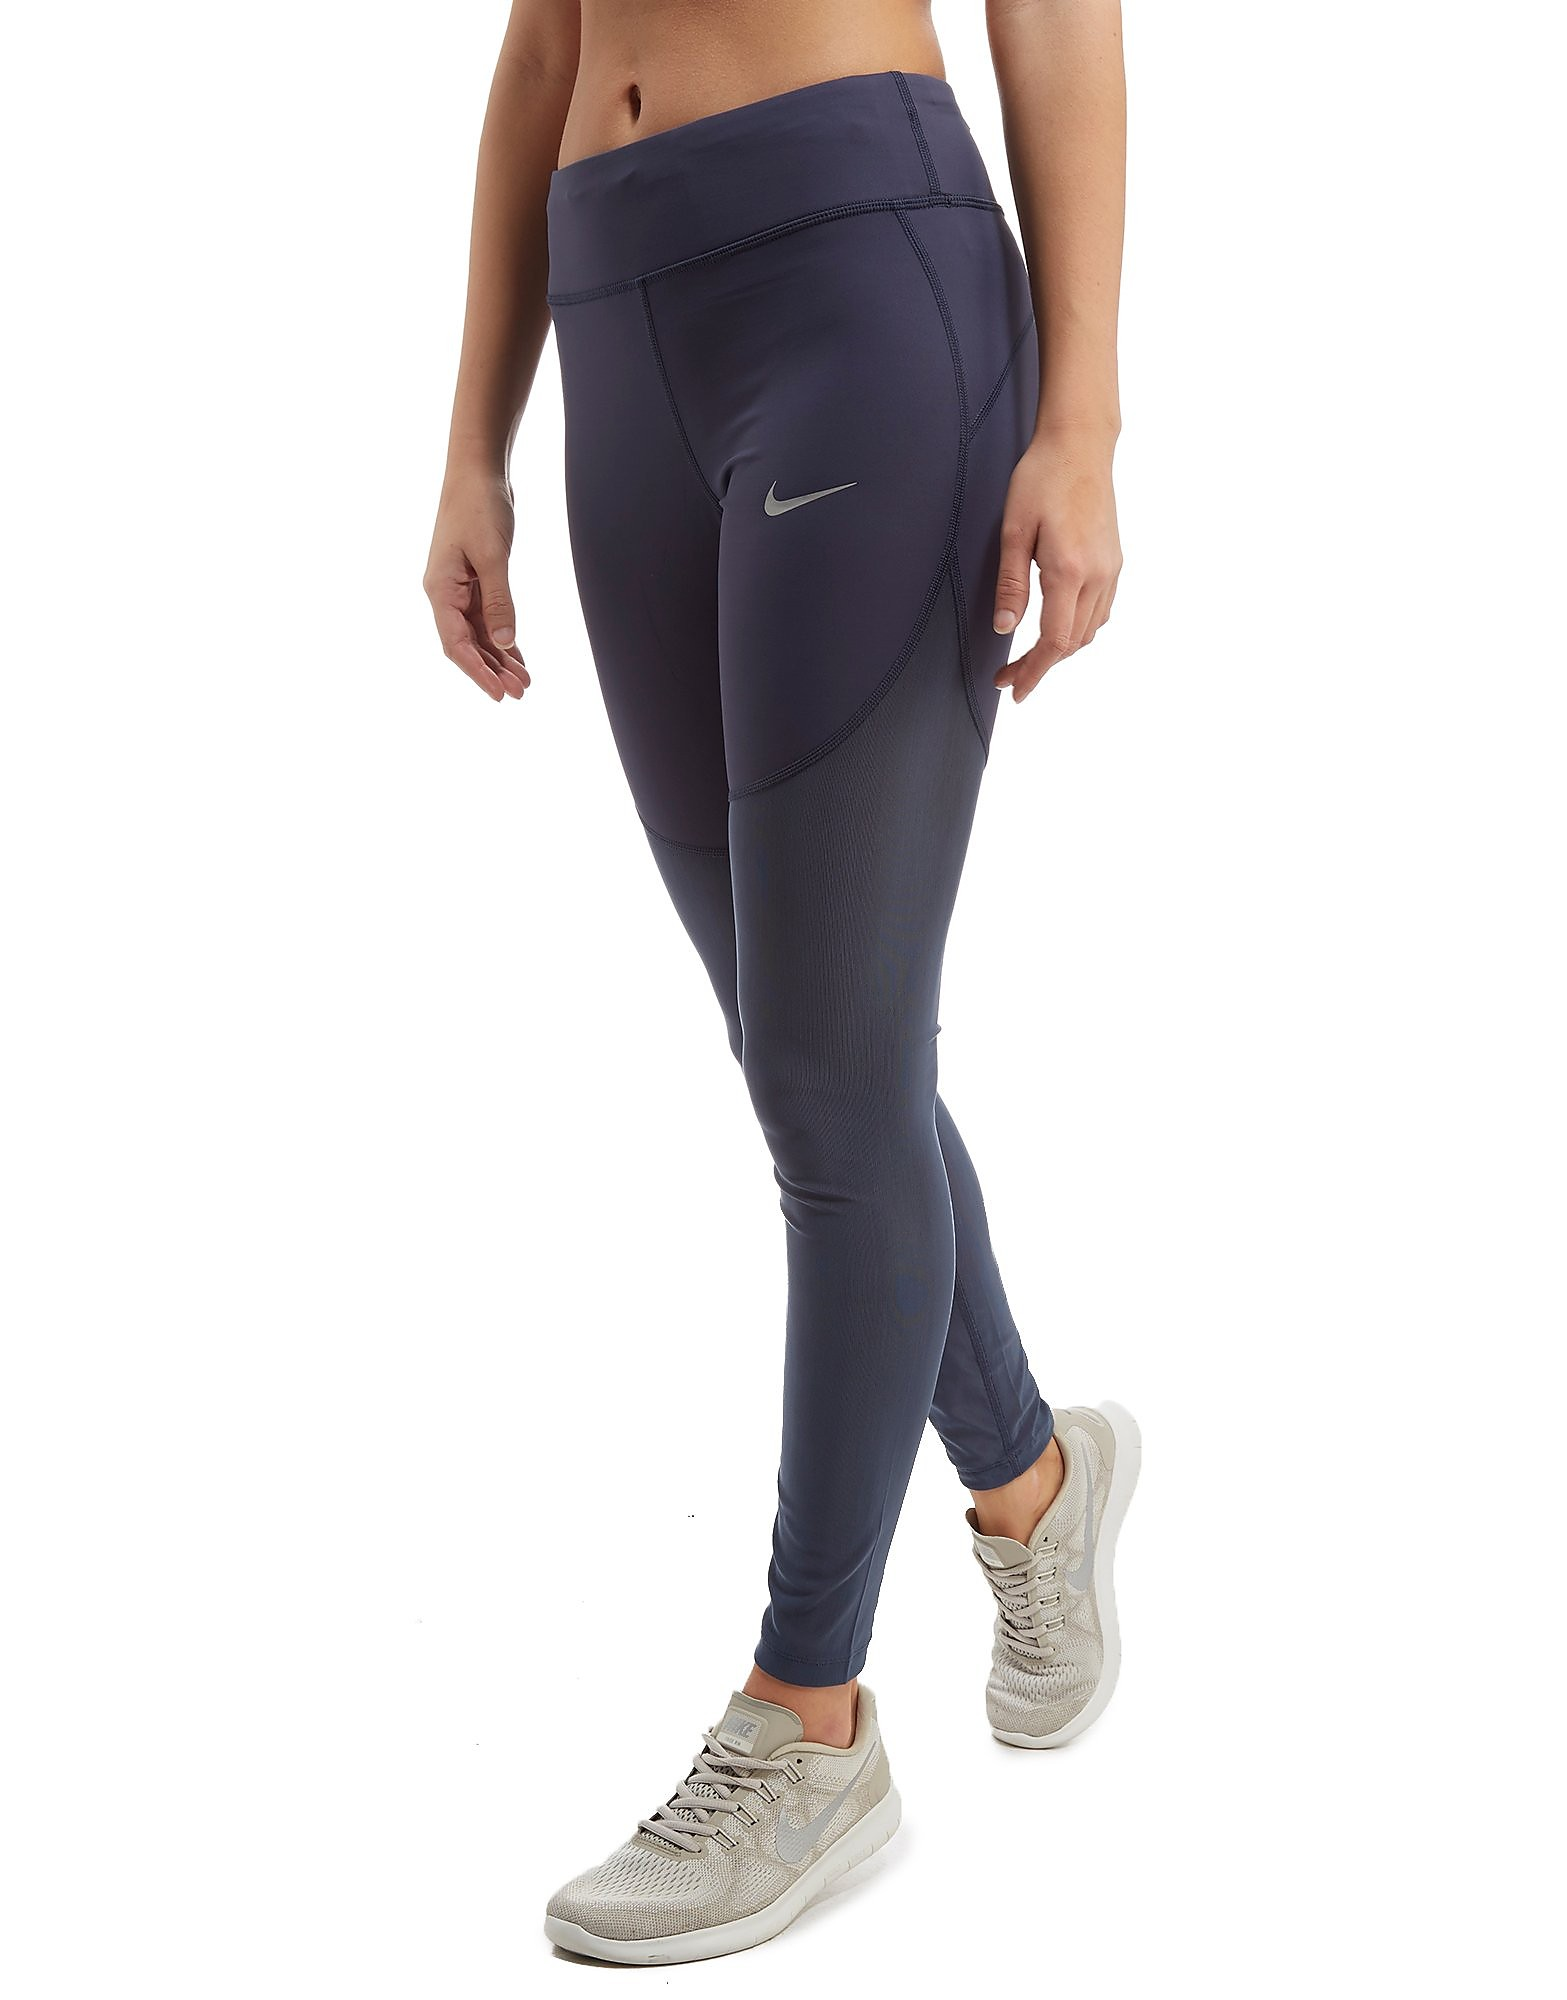 Nike Epic Lux Running Tights